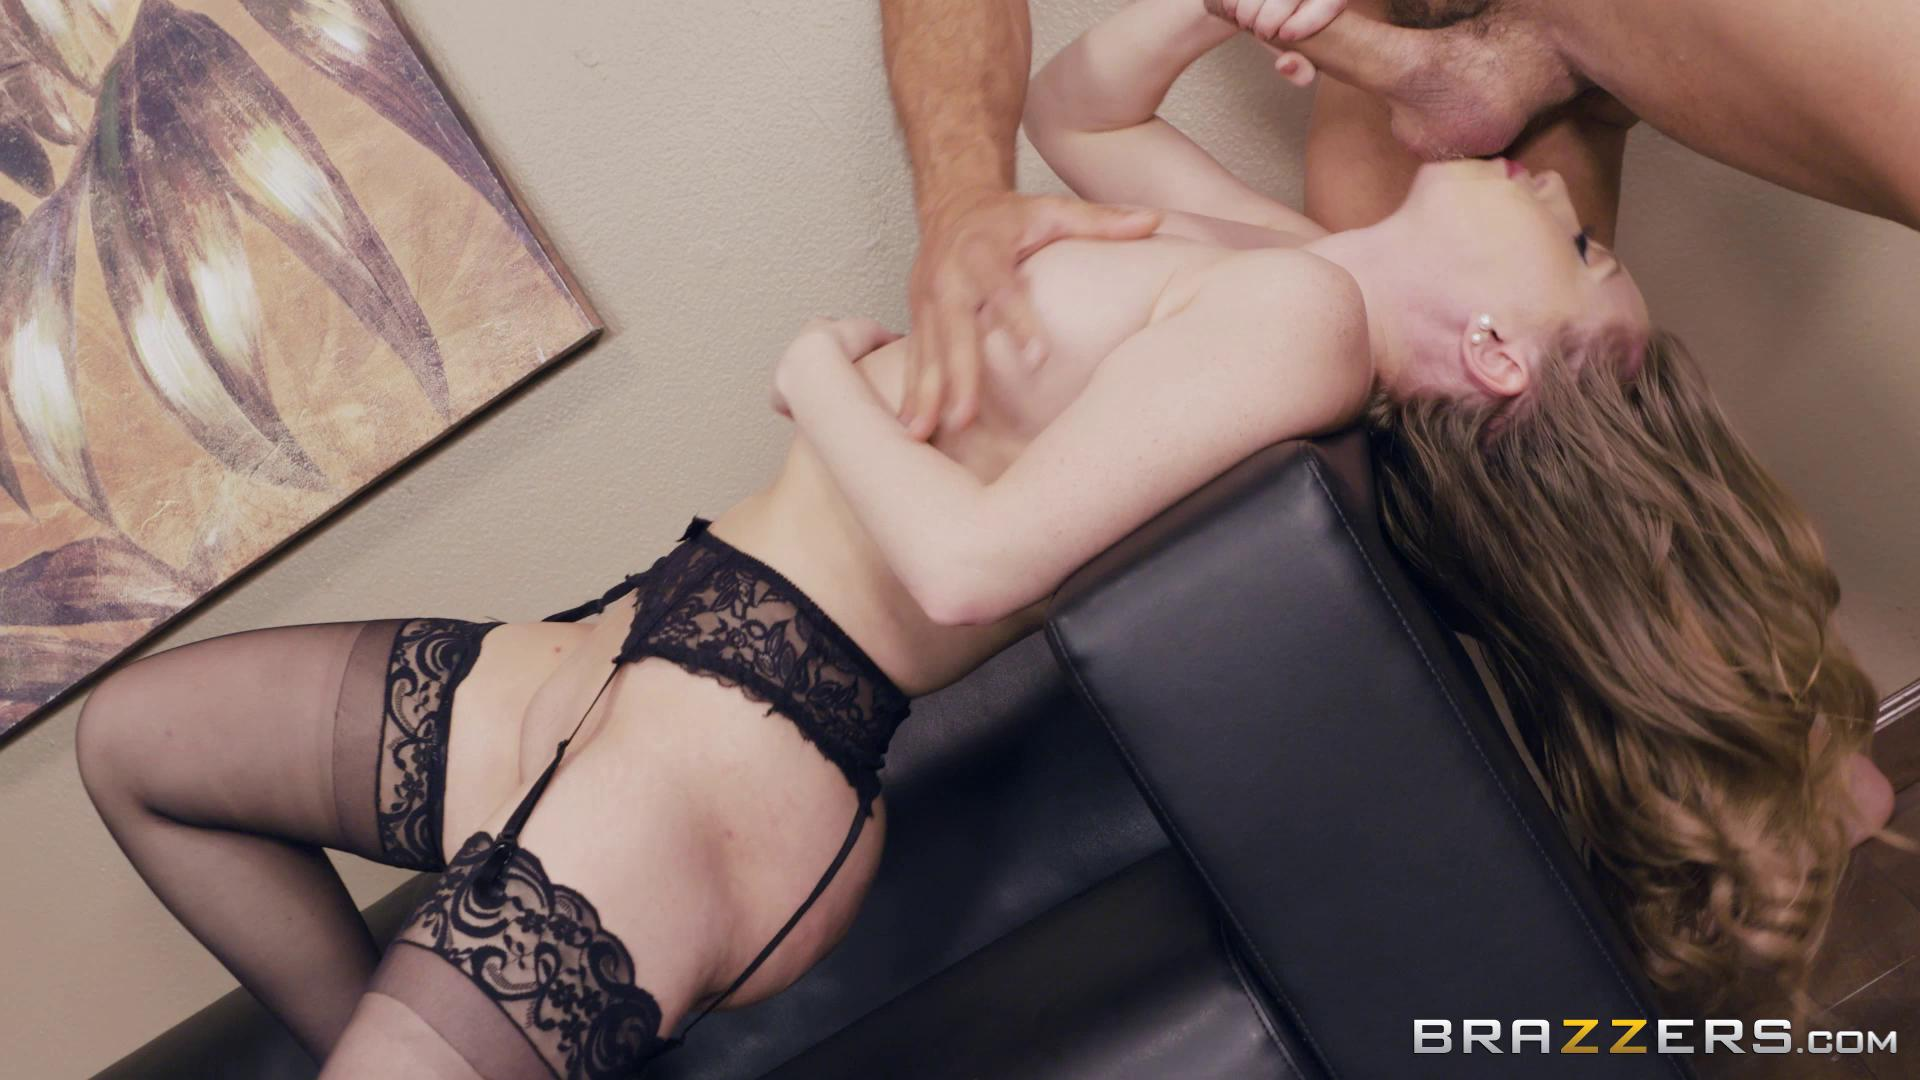 BigButtsLikeItBig – Harley Jade Seducing The Shopgirl